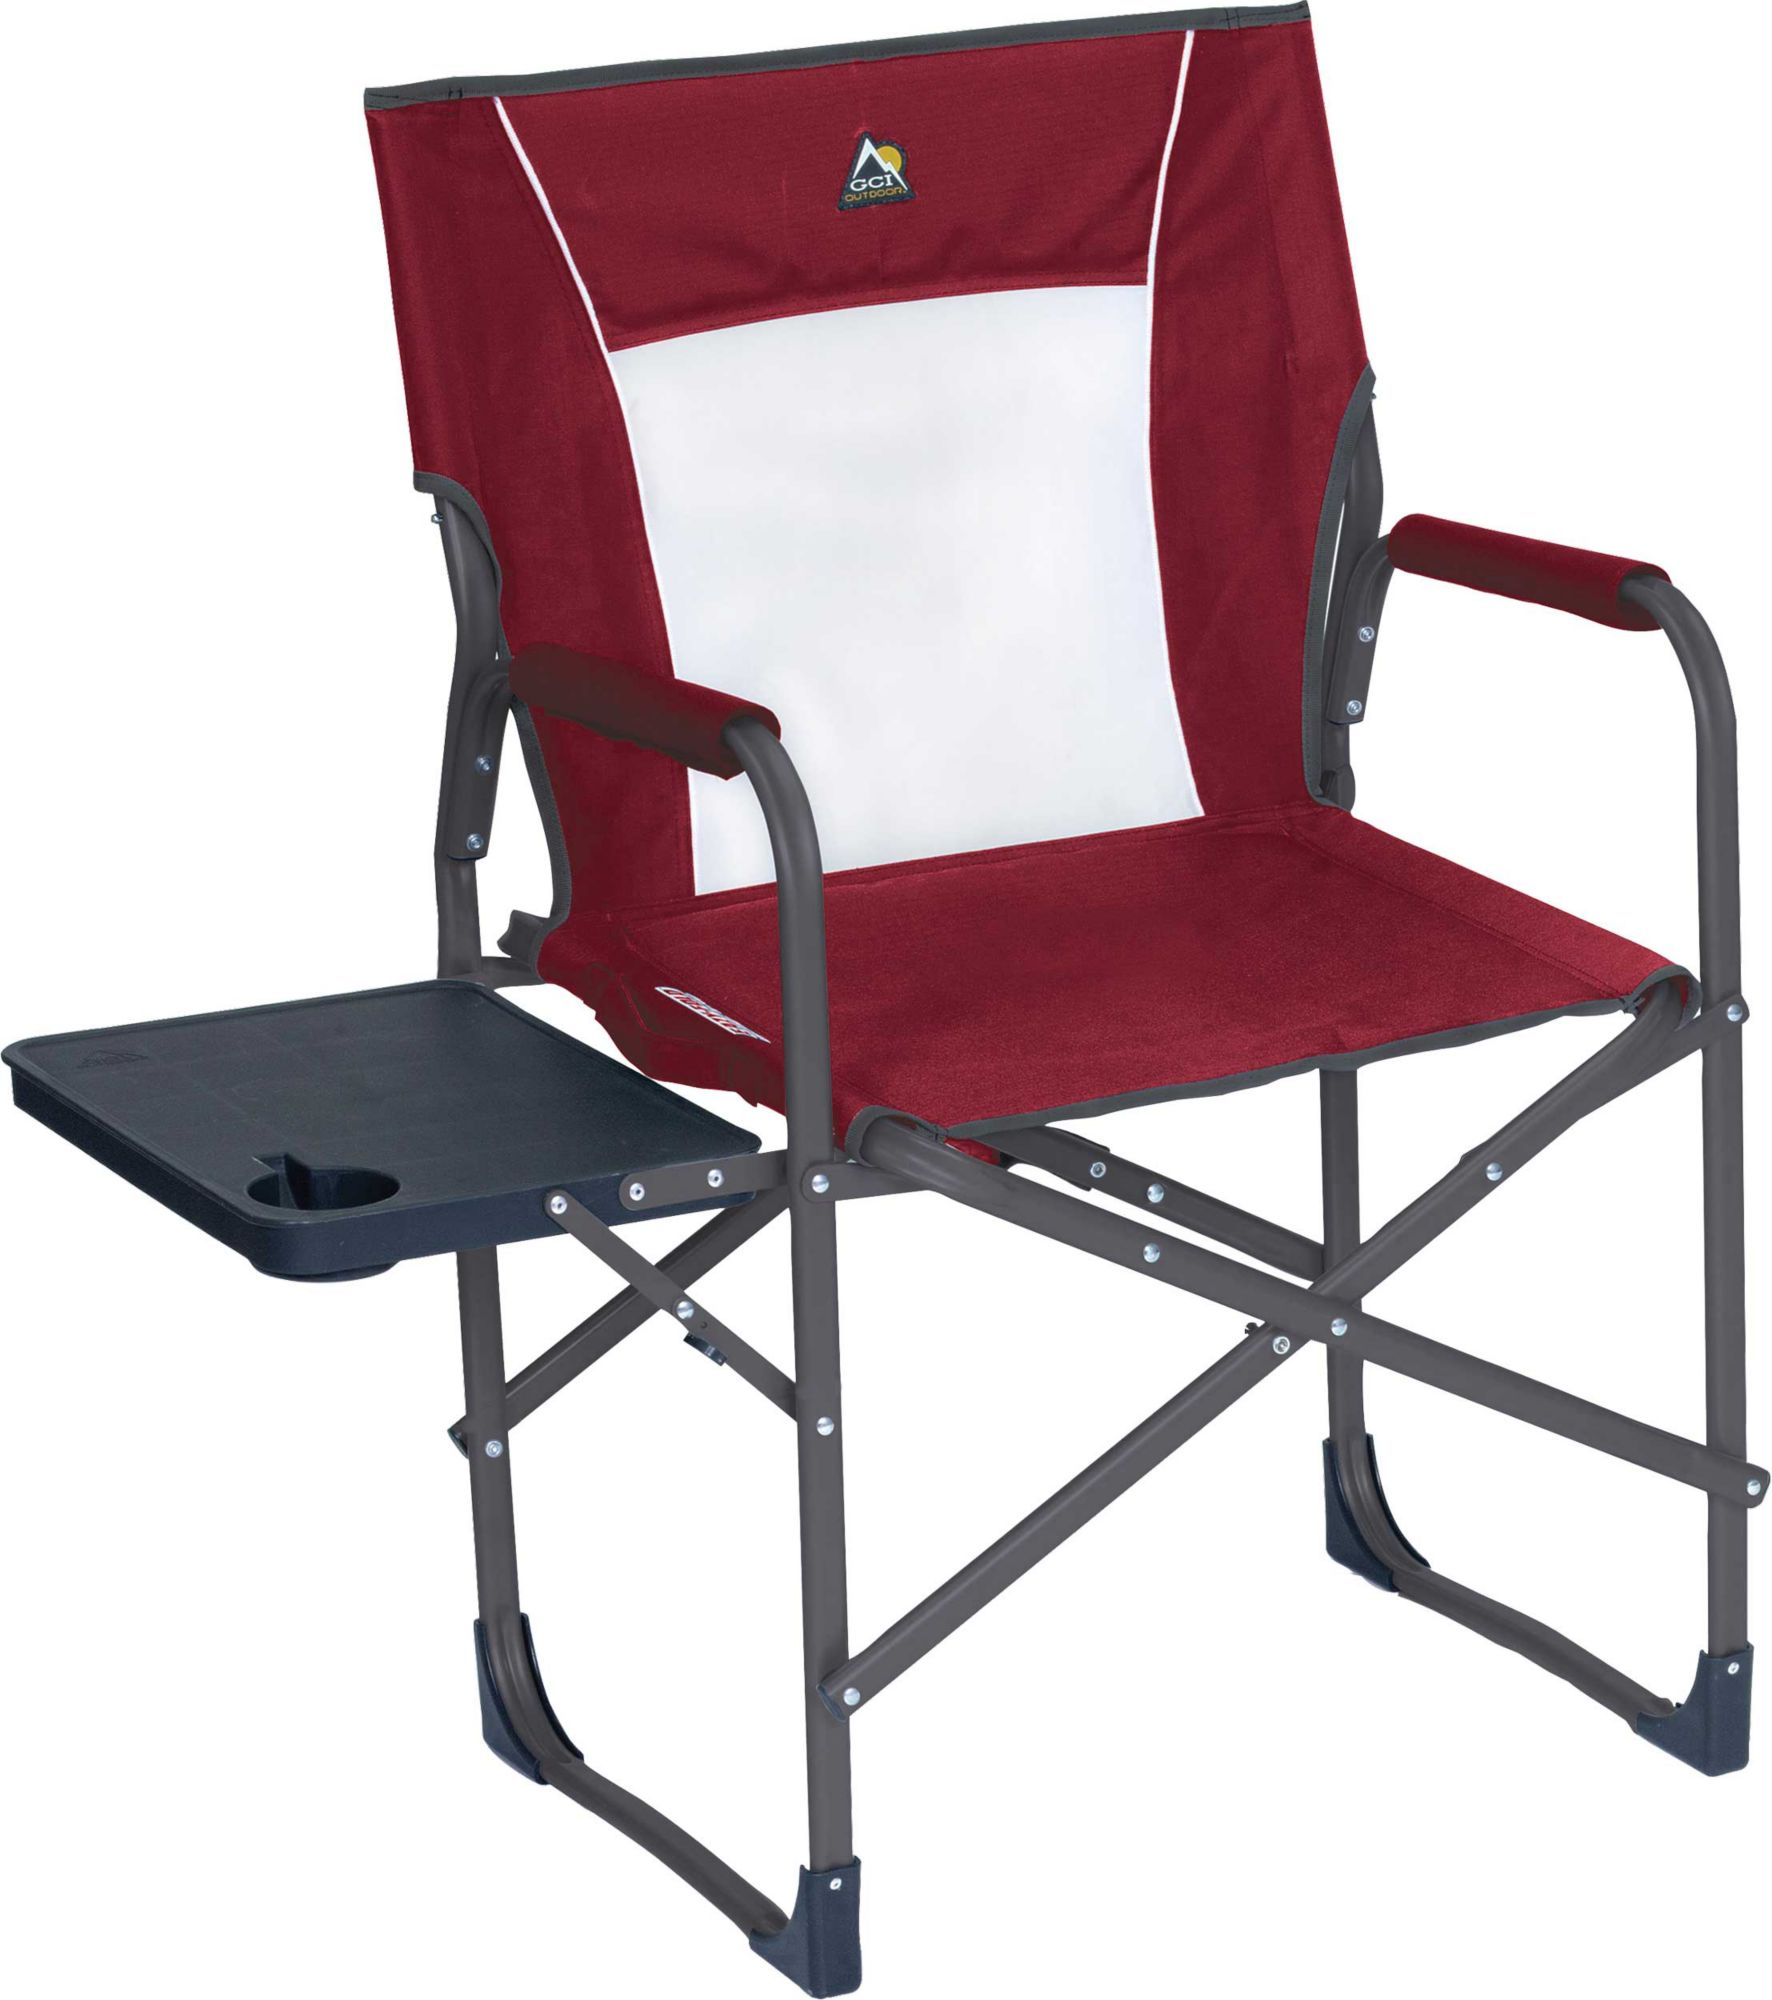 GCI Outdoor Slim Fold Directoru0027s Chair